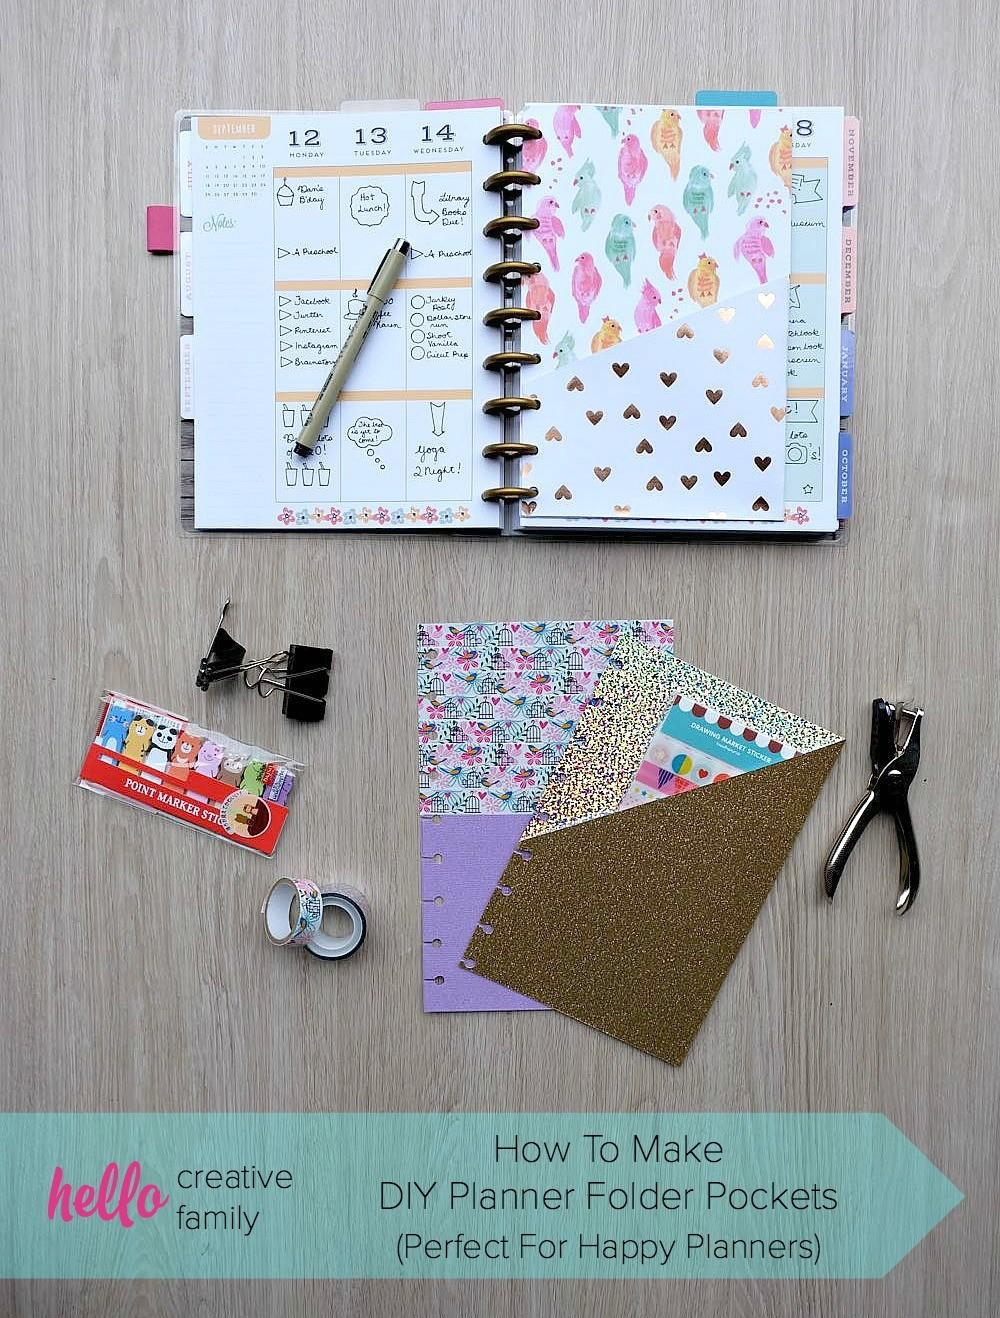 Make Diy Planner Folder Pockets Perfect Happy